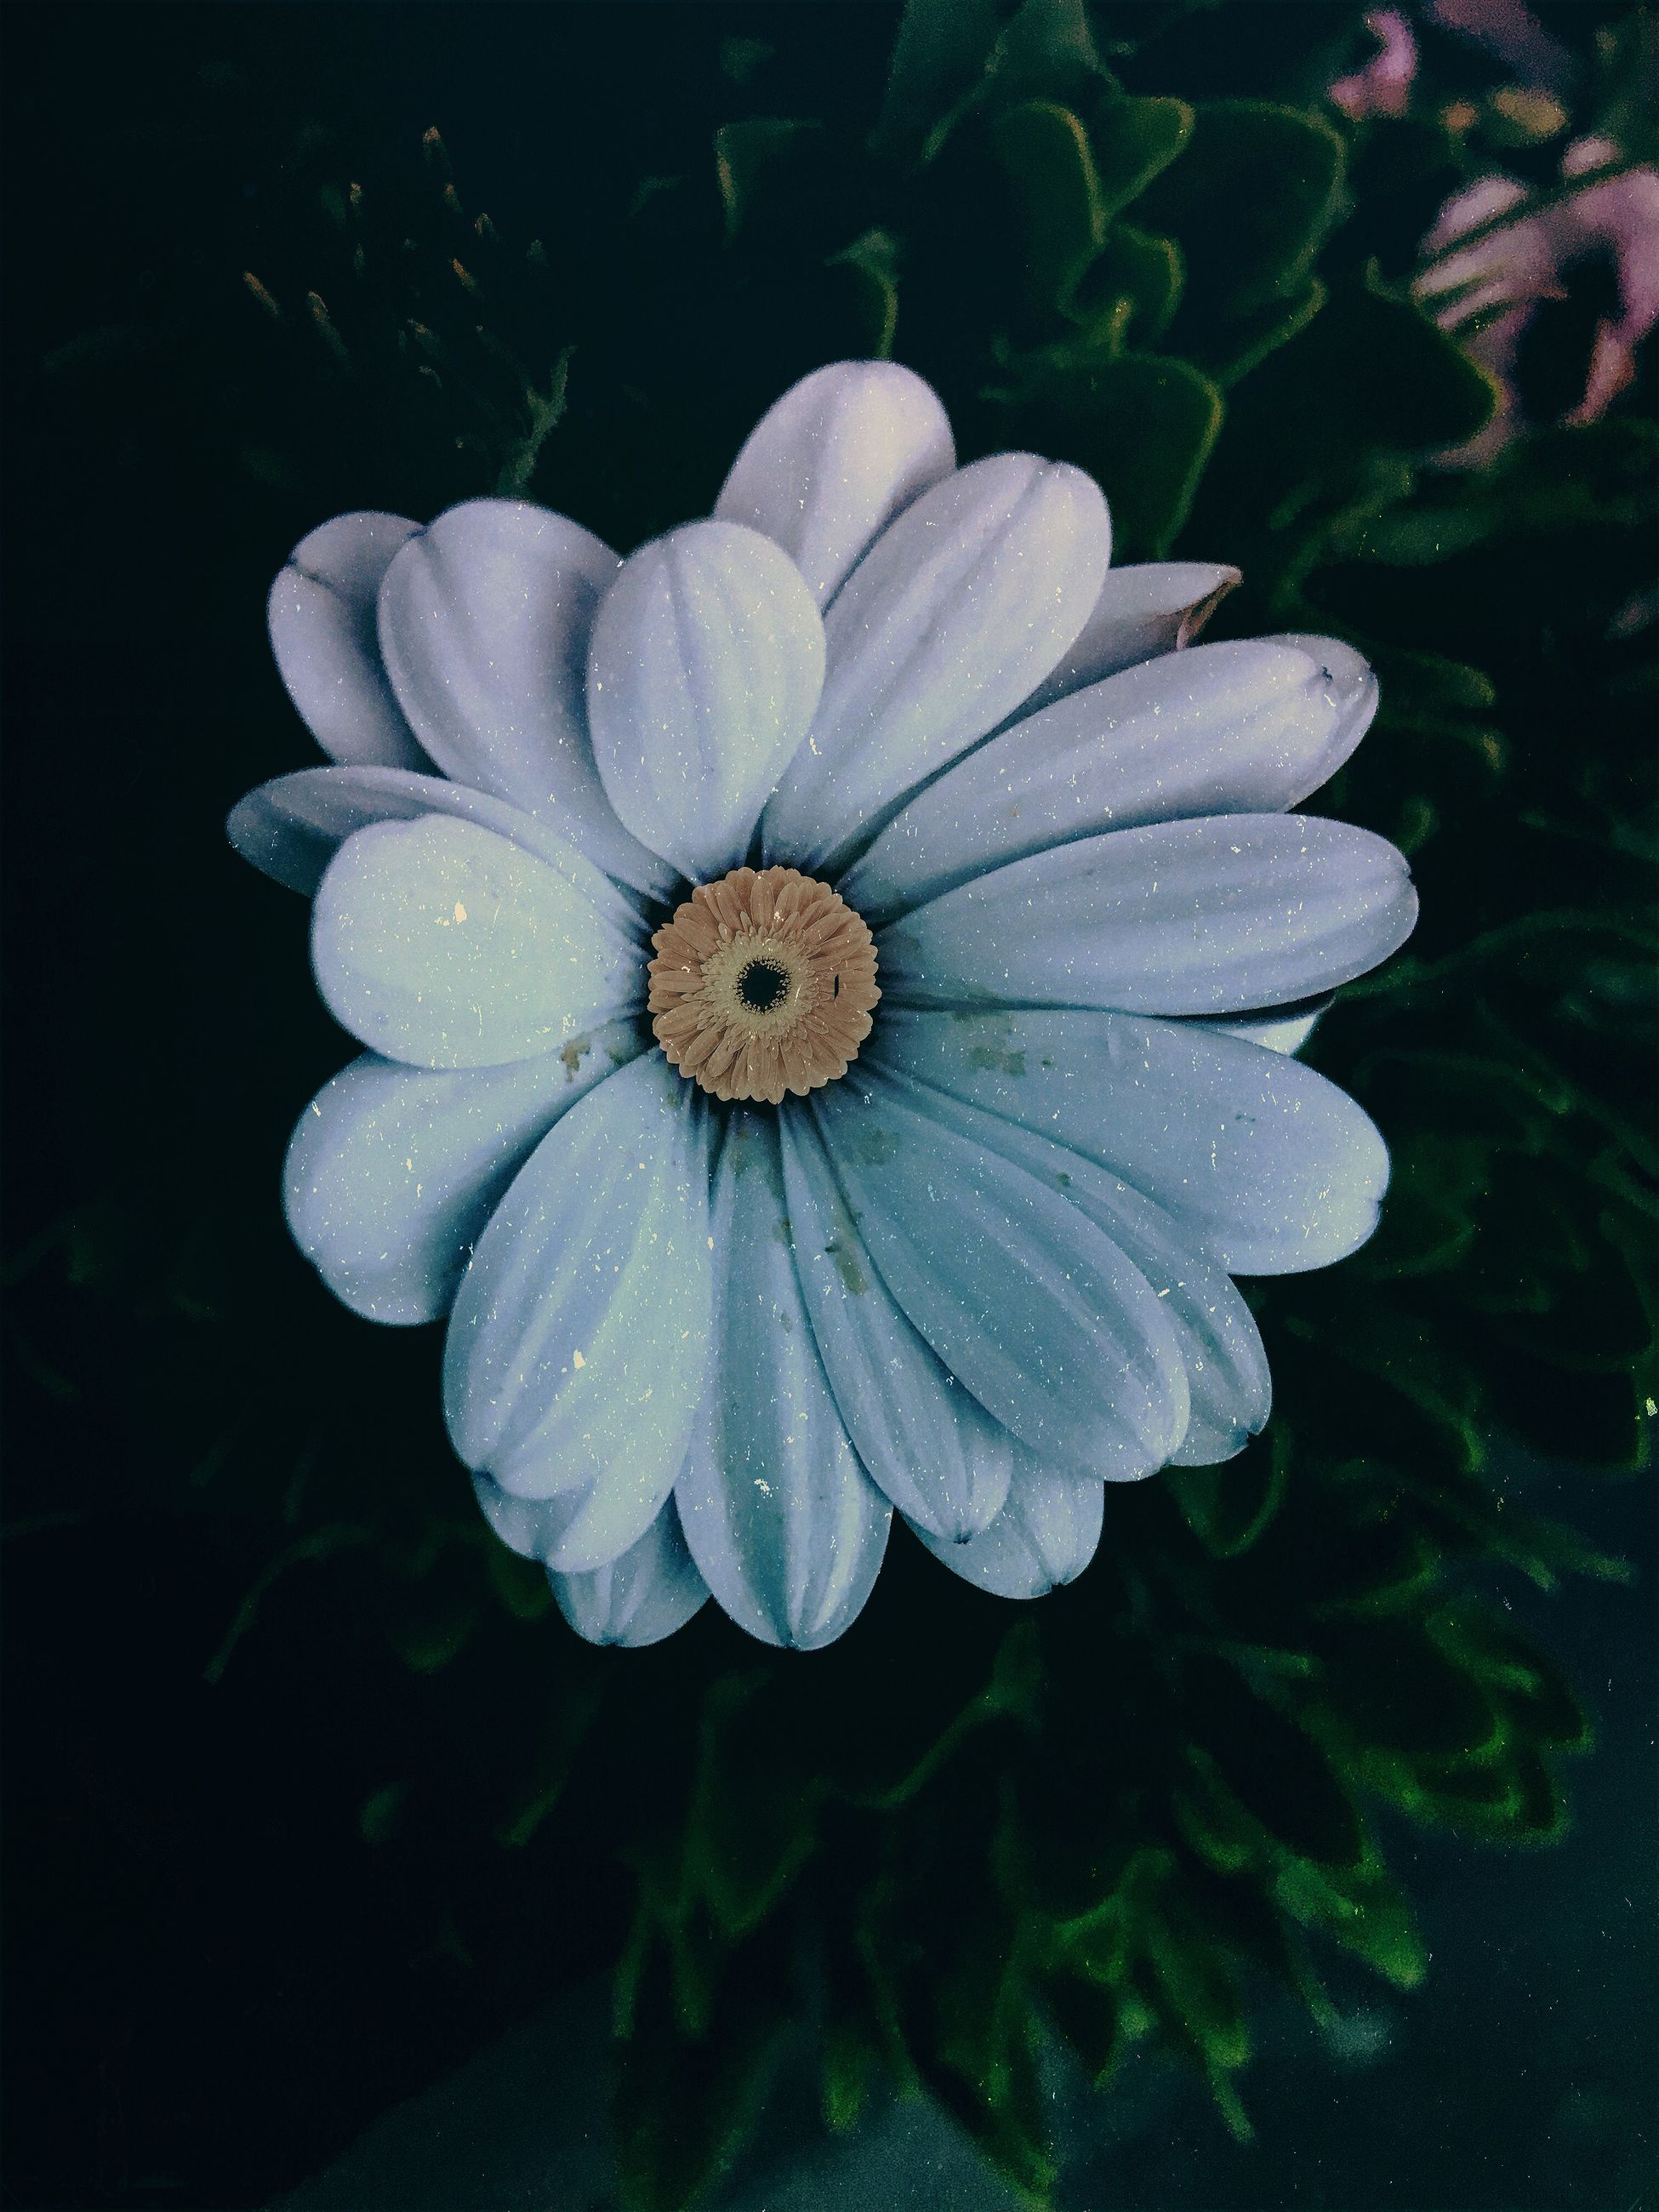 plant, flower, flowering plant, flower head, freshness, growth, fragility, inflorescence, vulnerability, beauty in nature, petal, close-up, nature, focus on foreground, no people, day, white color, outdoors, botany, pollen